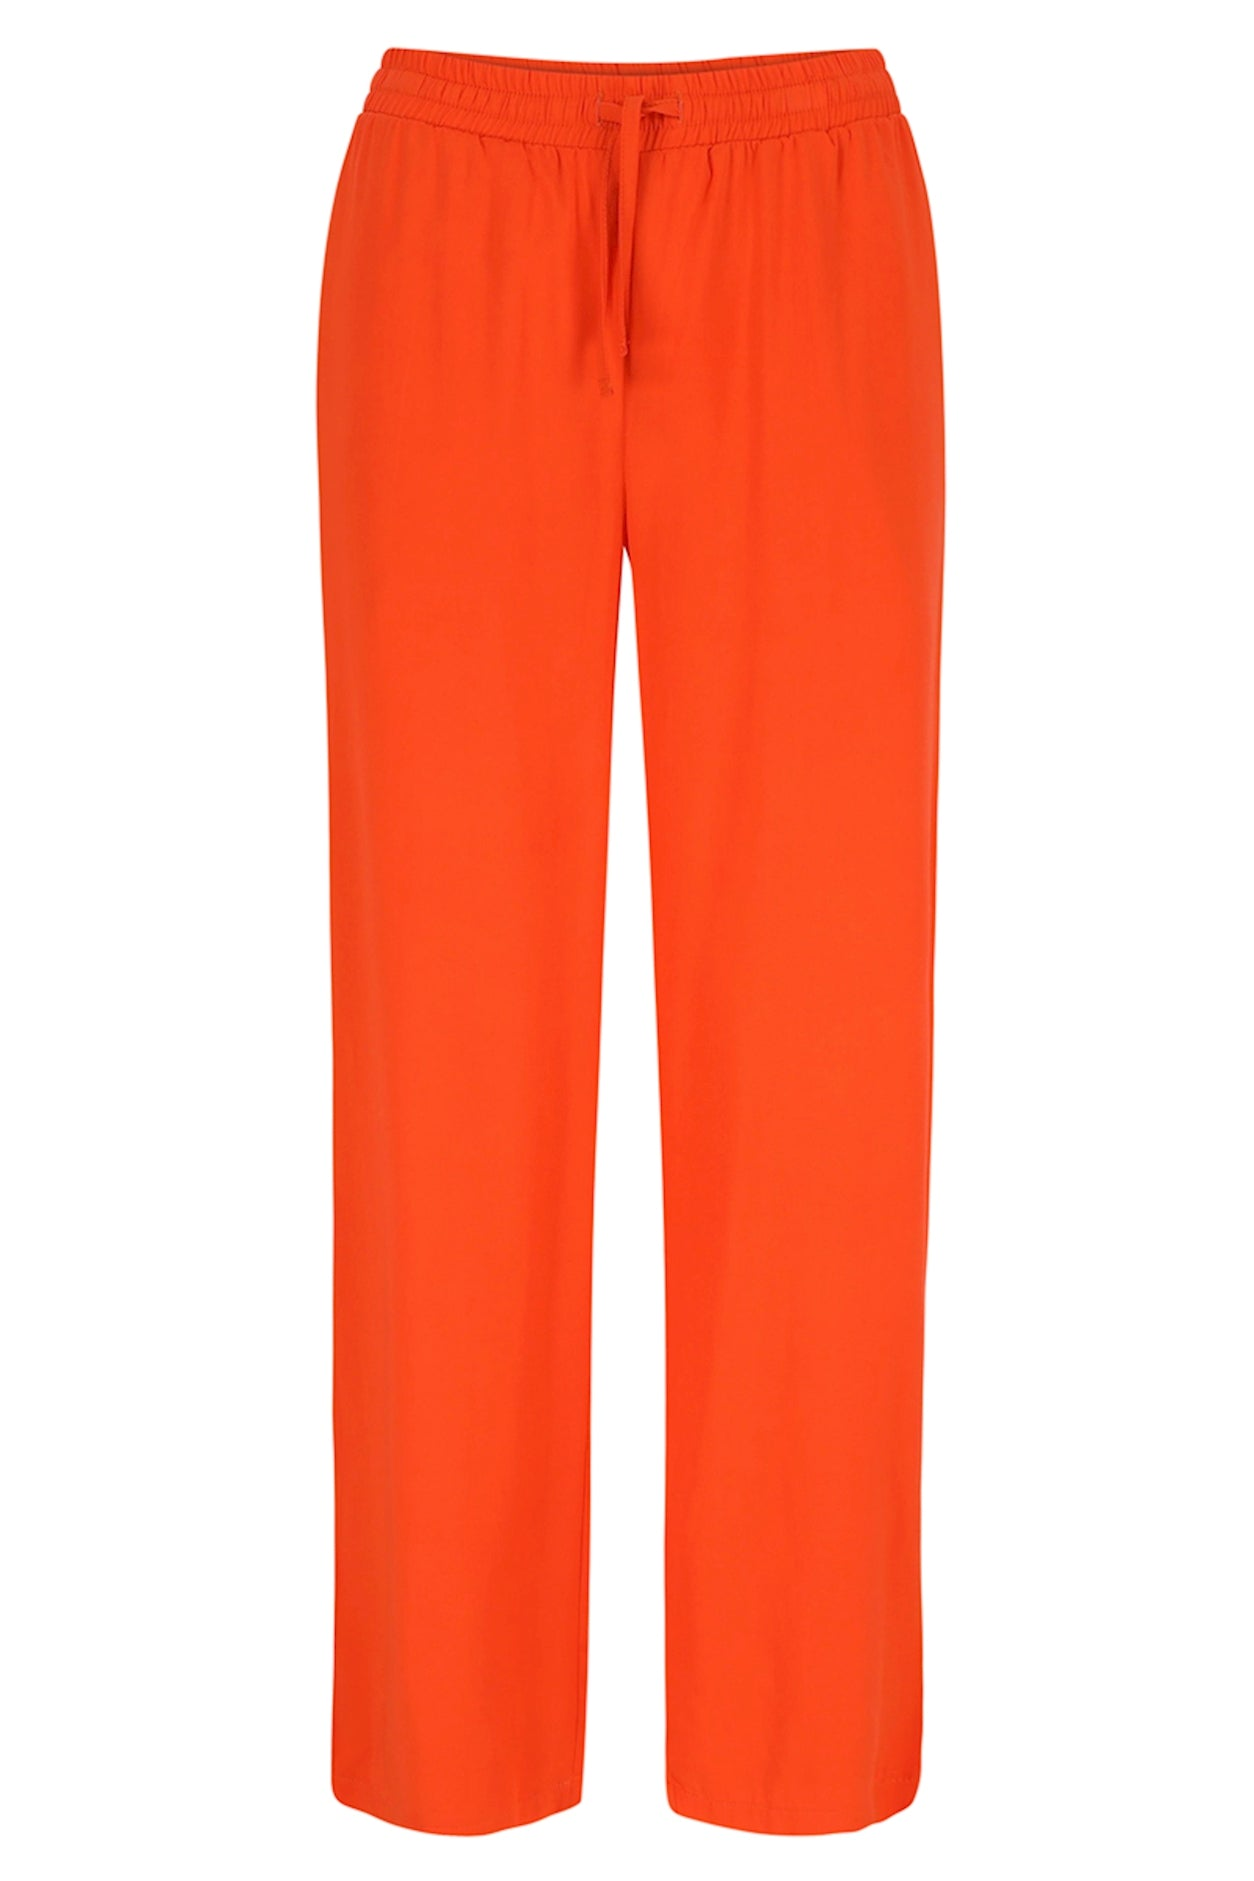 Luna Trousers, grenadine red - LilyBalou